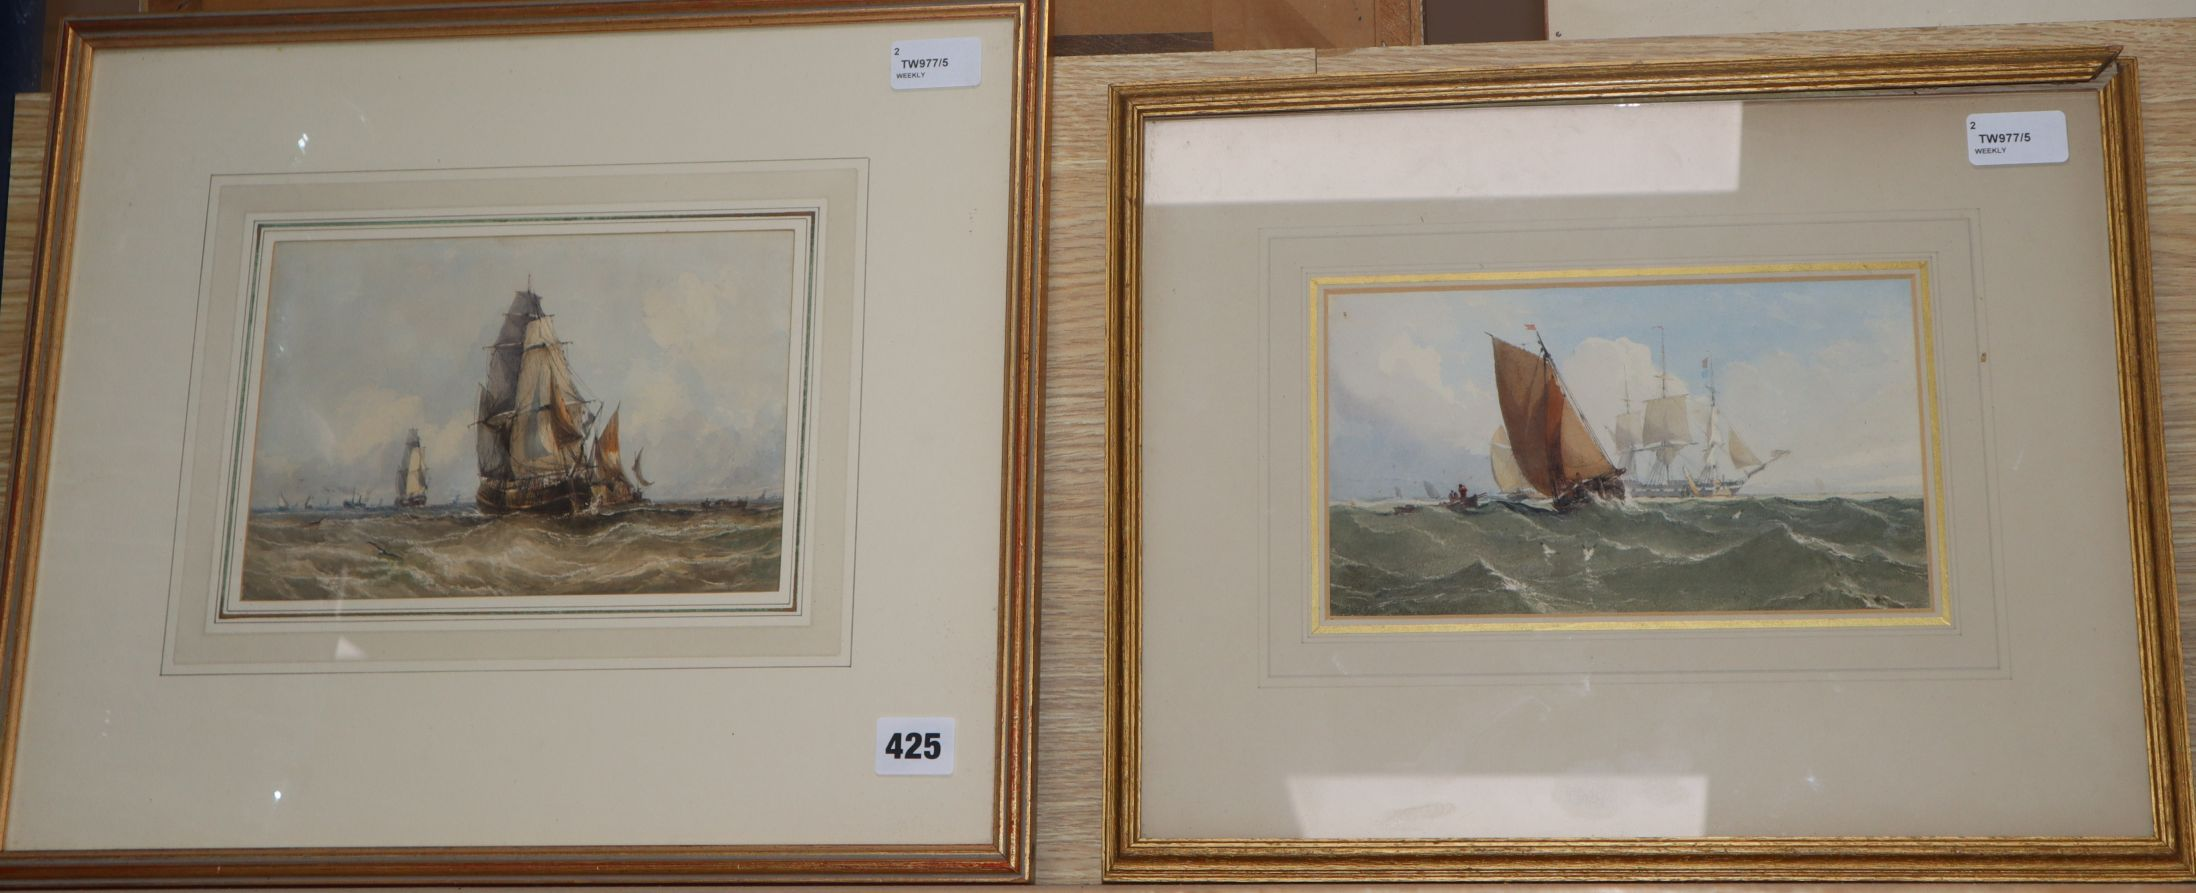 Lot 425 - Attrib. to Edward William Cooke (1811-1880), Shipping at the Mouth of the Thames (Fine Art Society